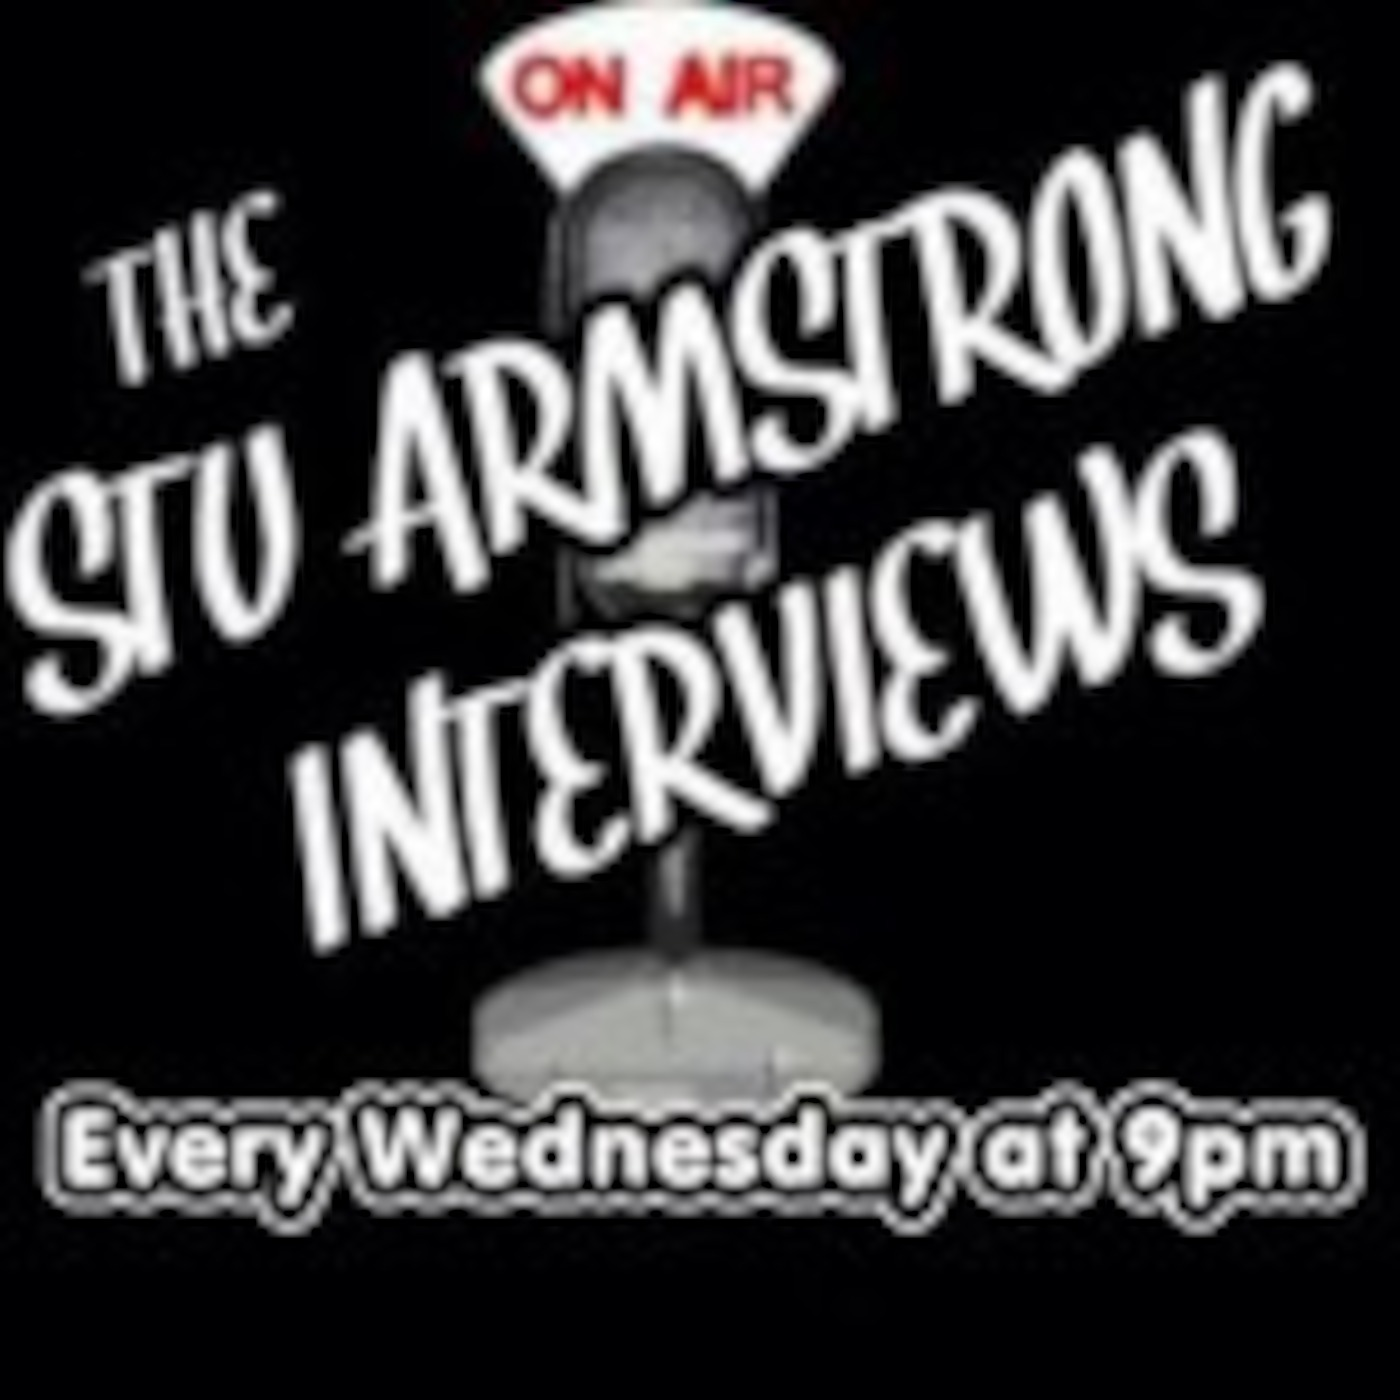 The Stu Armstrong Interviews